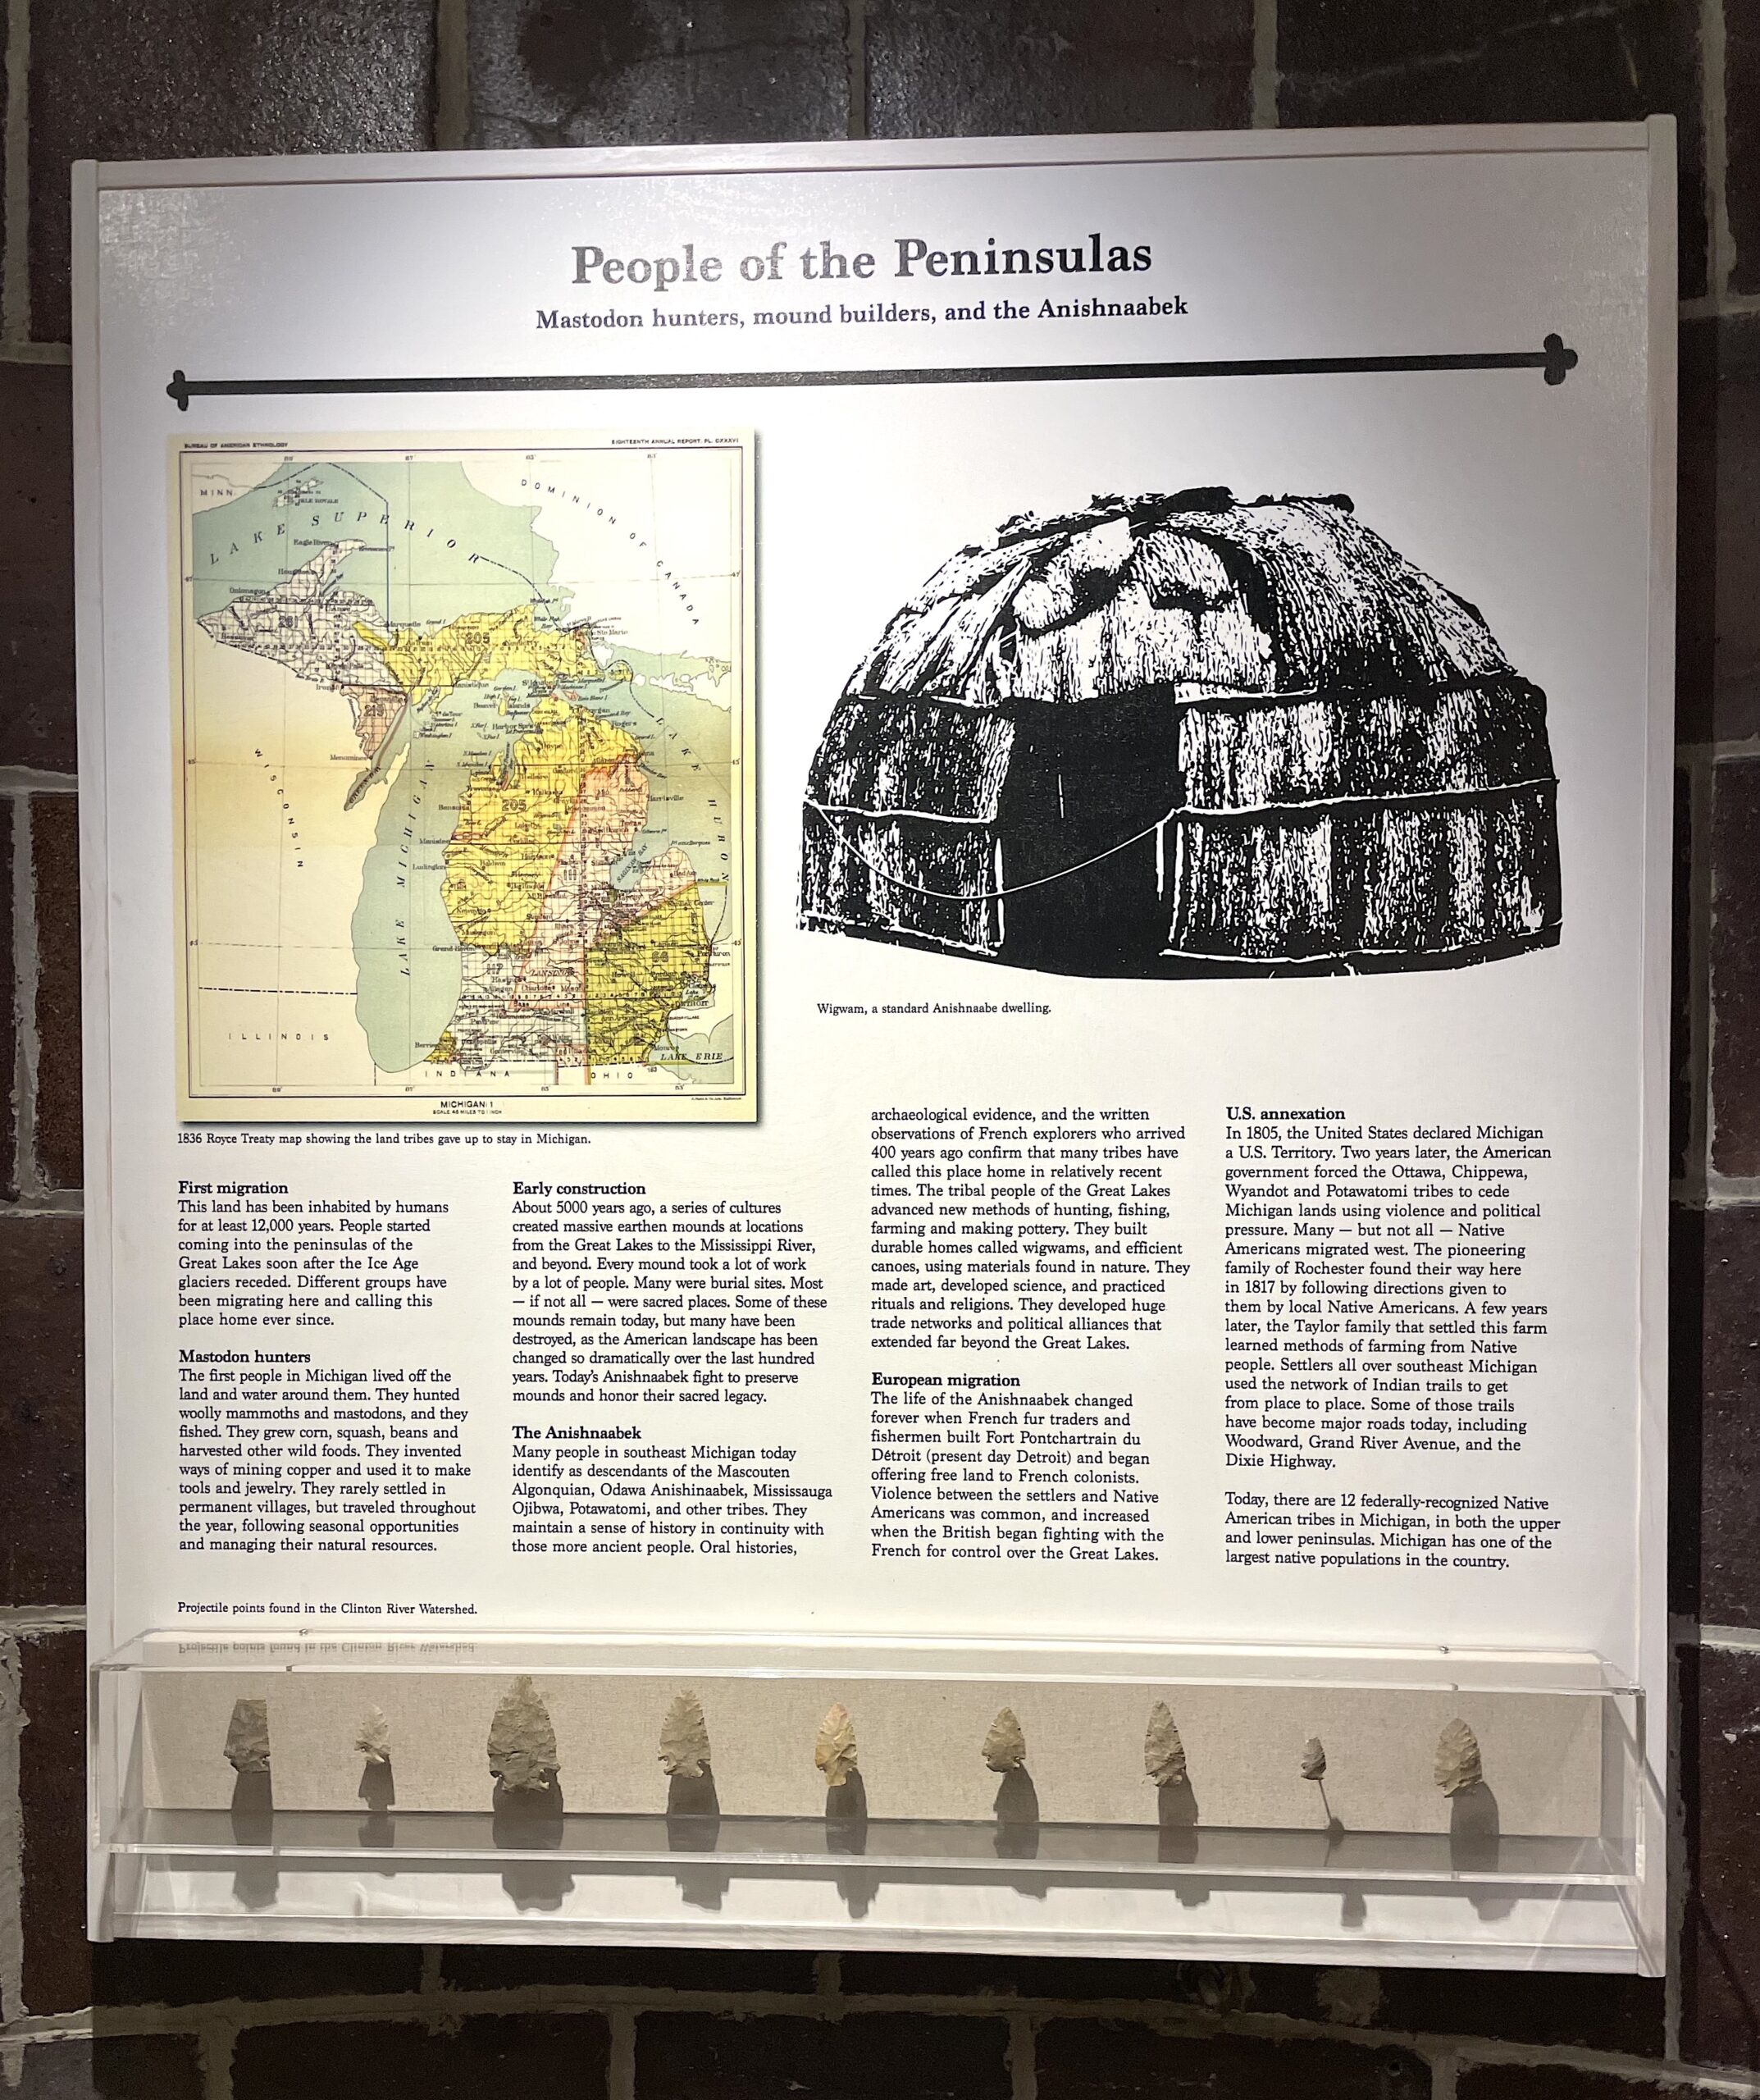 People of the Peninsula uses object display and text to delve into Michigan's rich Native American history.